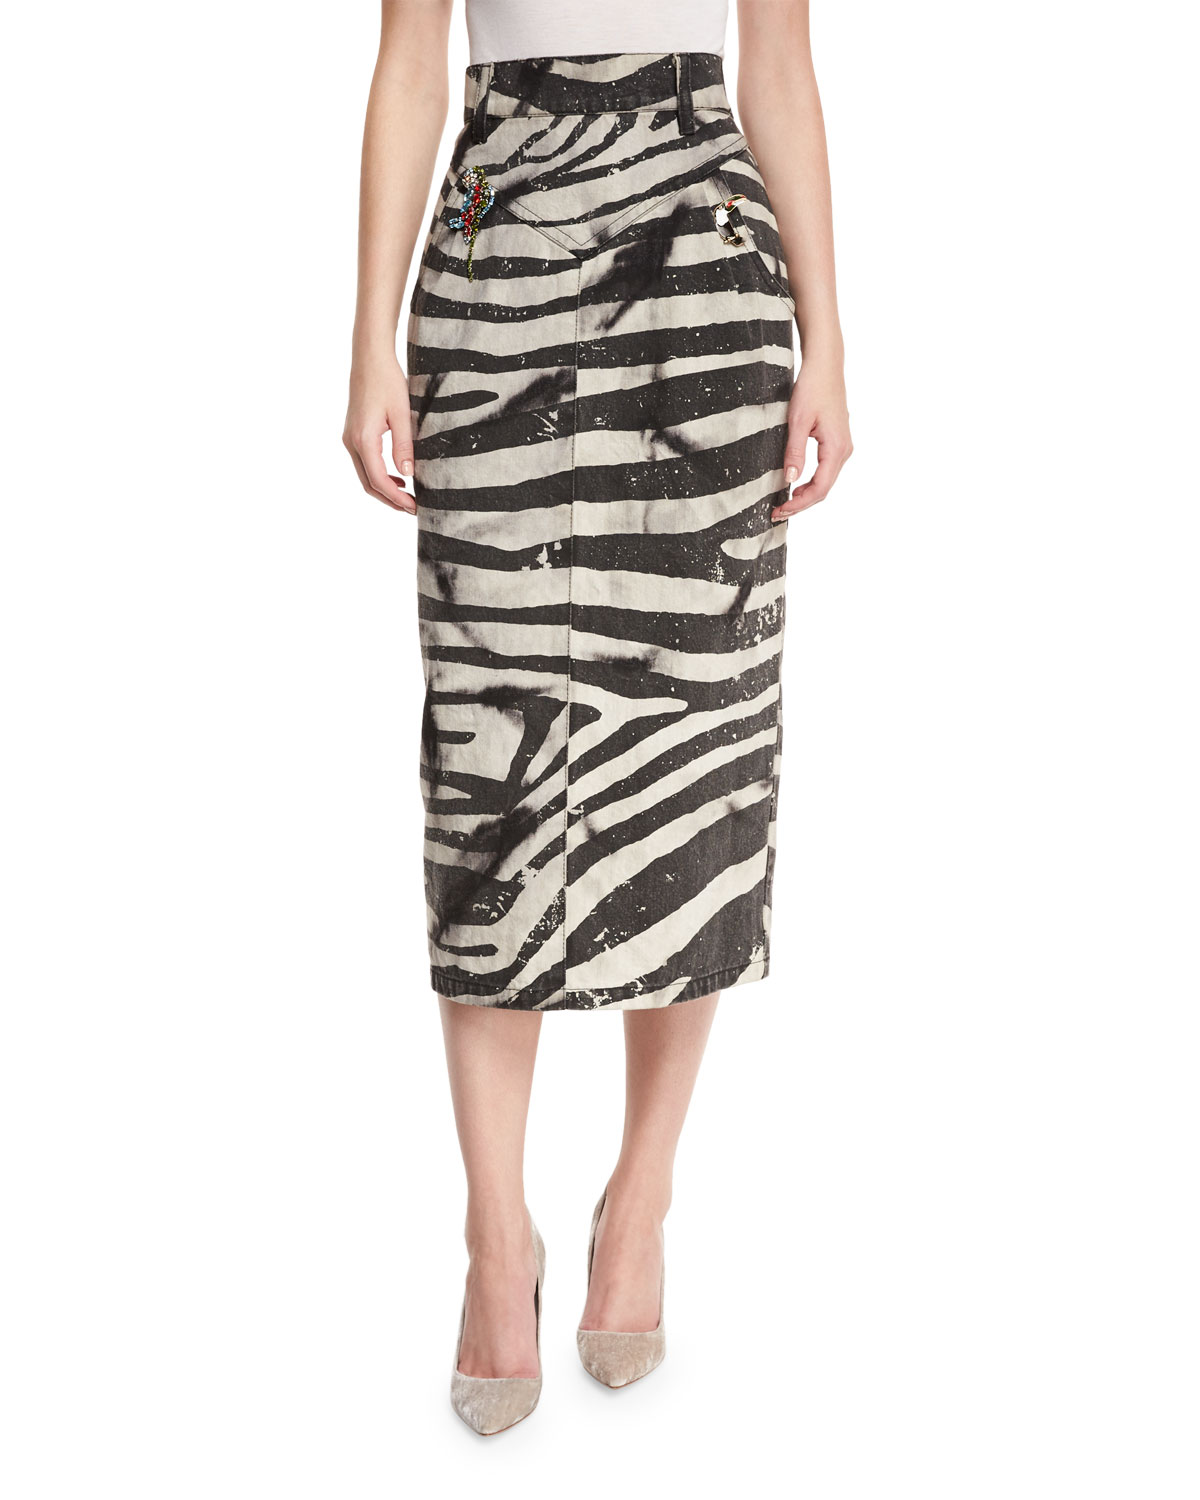 Embellished Zebra-Print Pencil Skirt, White